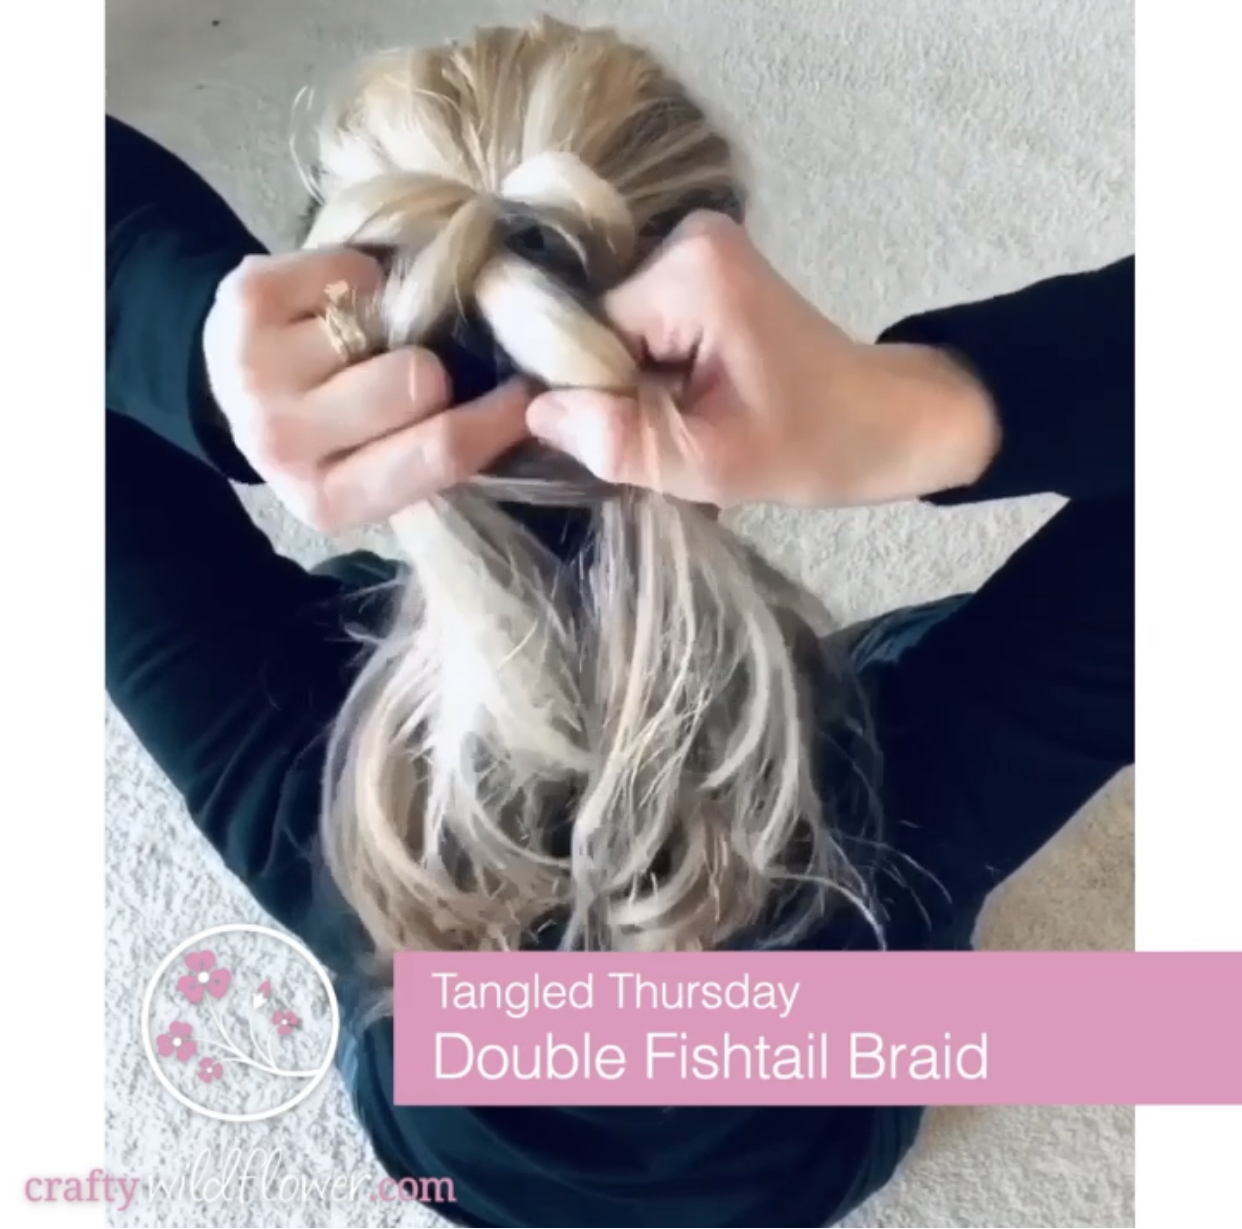 Tangled Thursday - Double Fish Tail Braid